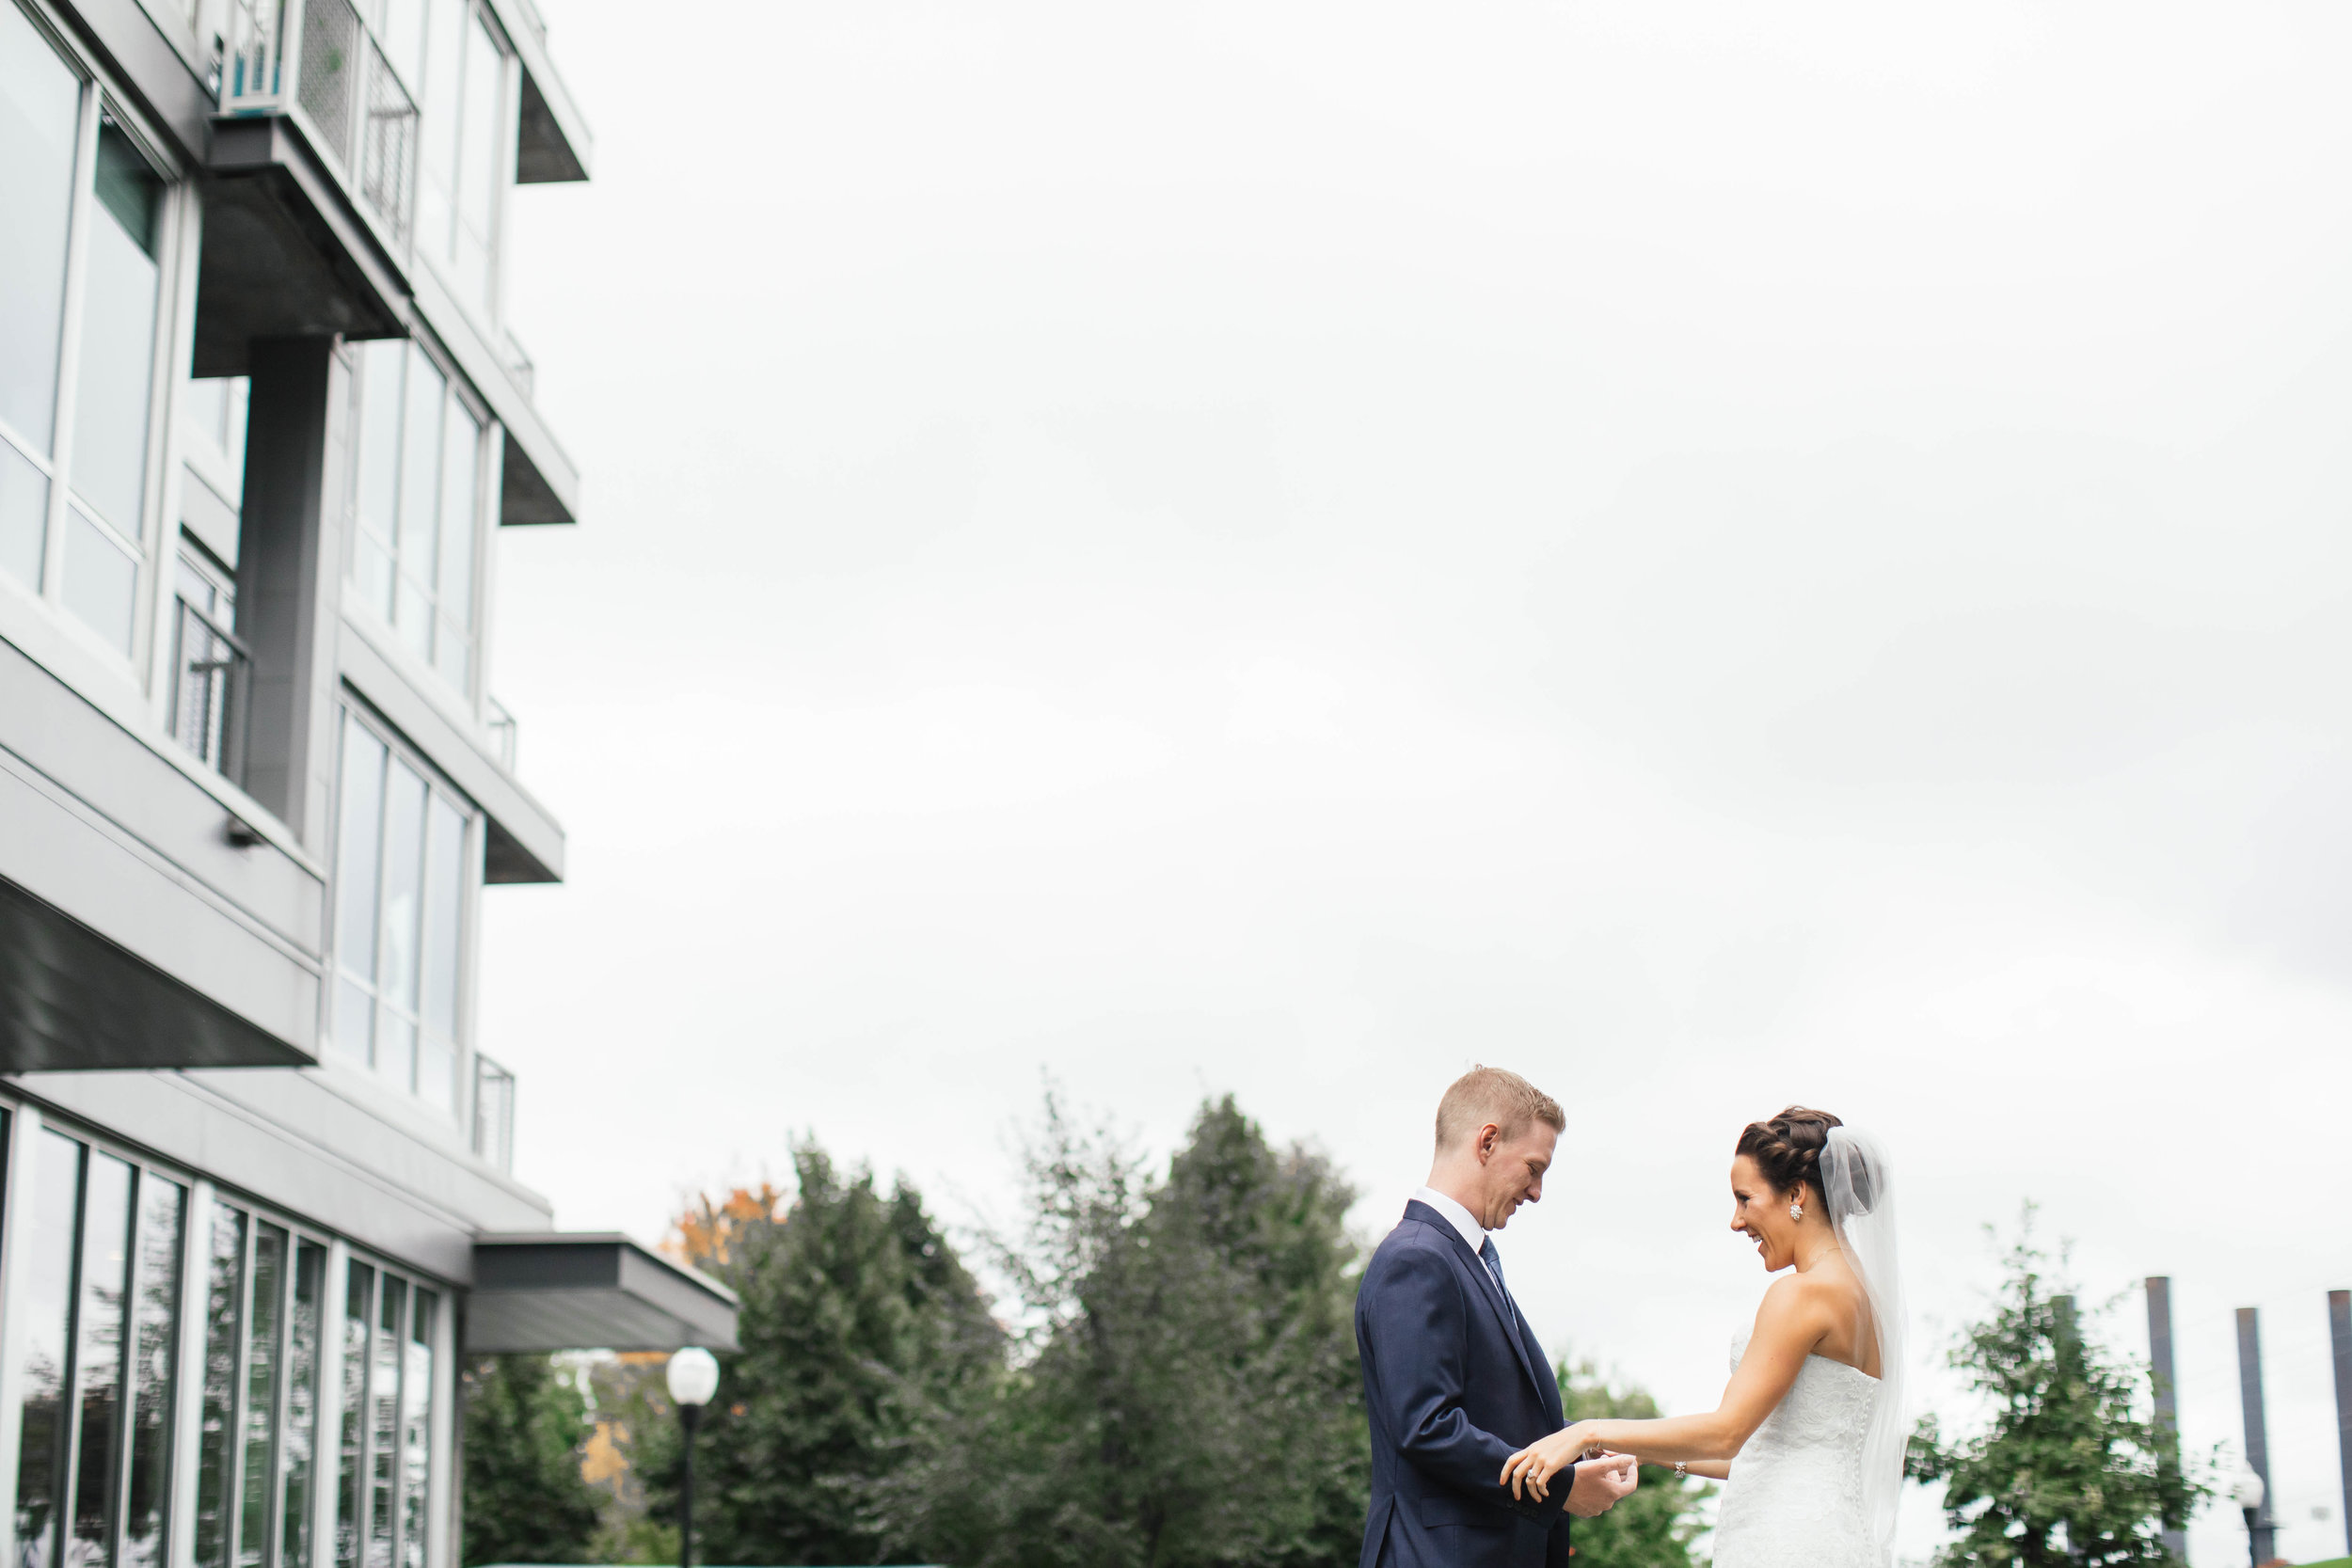 Mill city ruins wedding photography first look with bride and groom